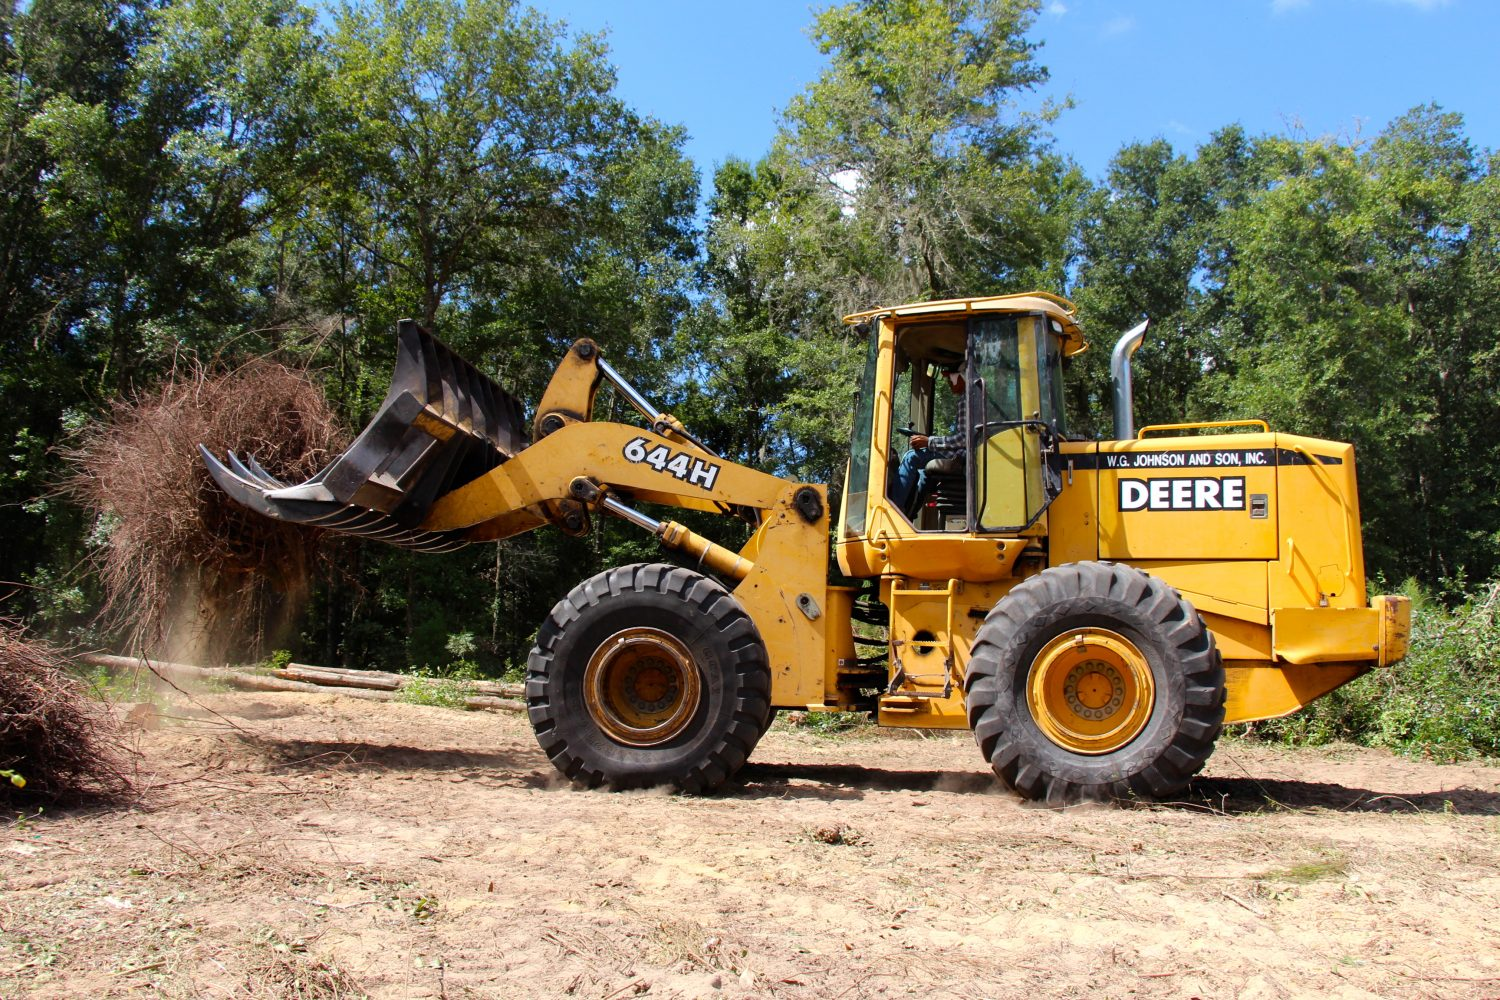 Bulldozers work constantly to clear more land, as builders race against time from building one house to the next.